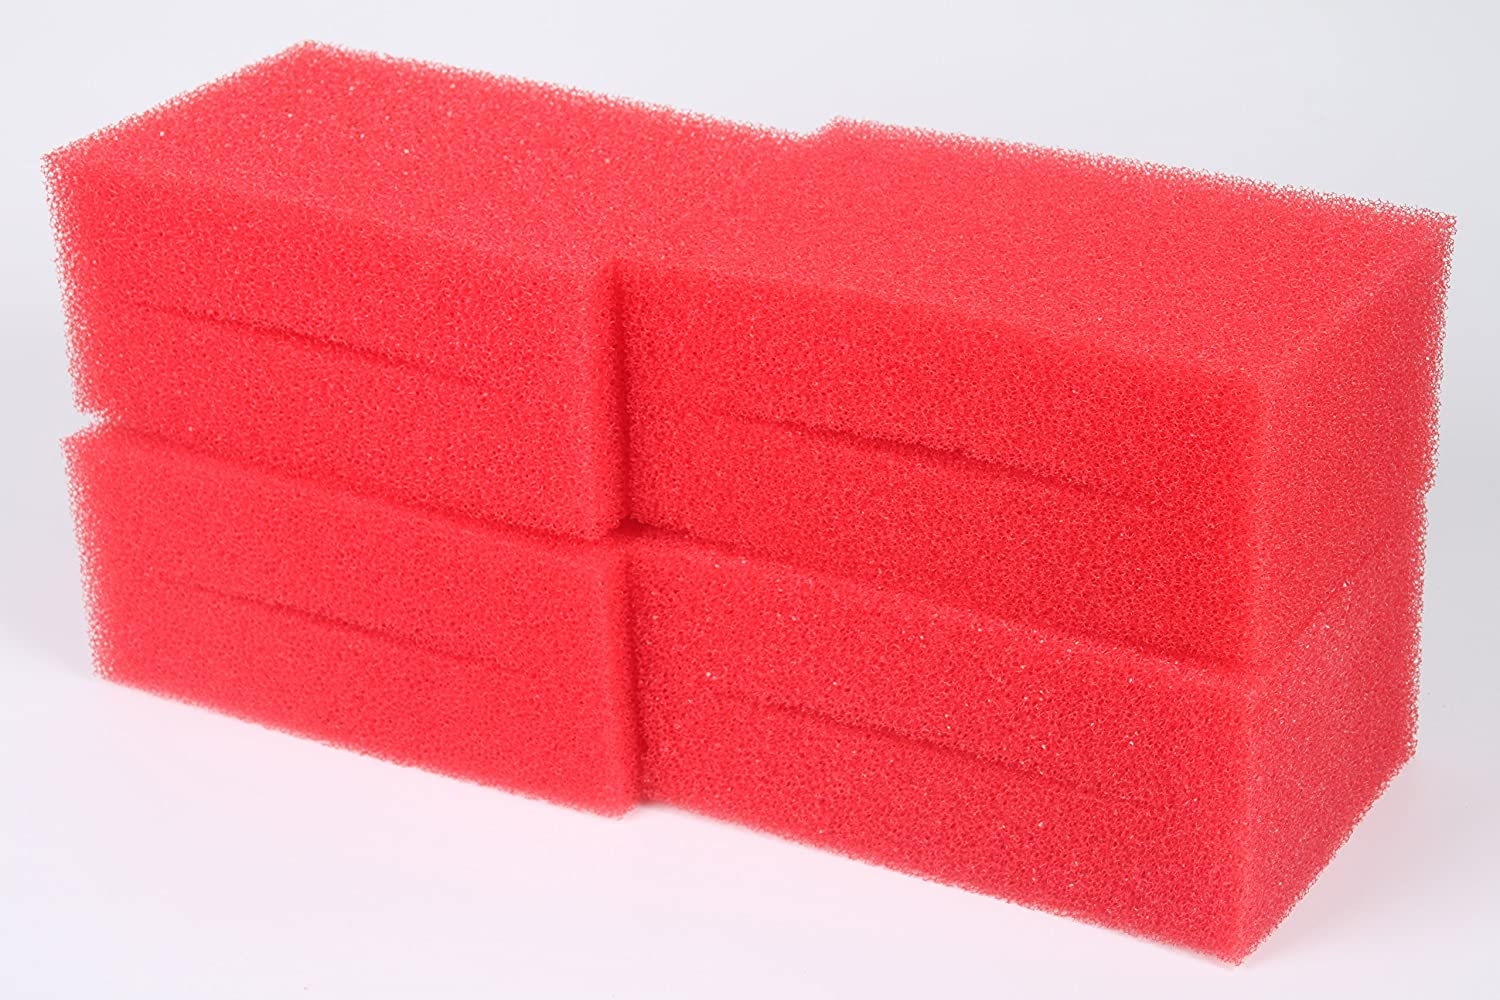 Pack of 4 LTWHOME Medium Red Foam Filter Sponge Fit for Oase Biotec Screenmatic 18 & 36 Pond Filter (Pack of 4)